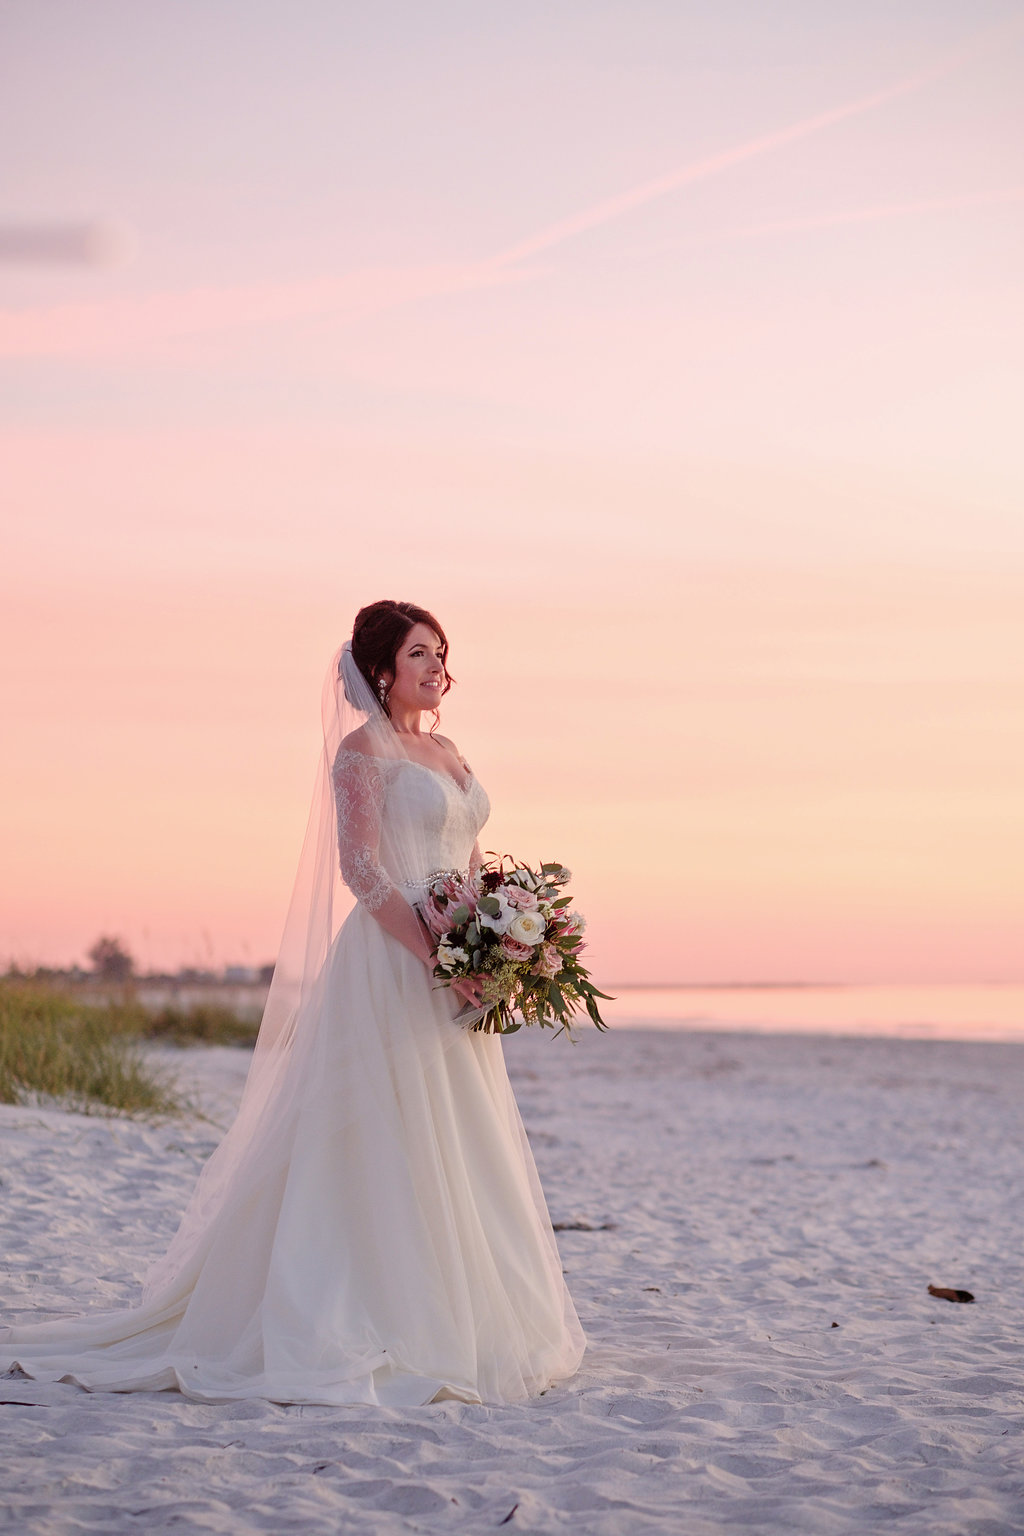 Outdoor Beach Sunset Bridal Portrait in A Line Wedding Dress with White, Pink, and Burgundy with Greenery Bouquet | St Petersburg Wedding Photographer Marc Edwards Photography | Hair and Makeup Femme Akoi Beauty Studio